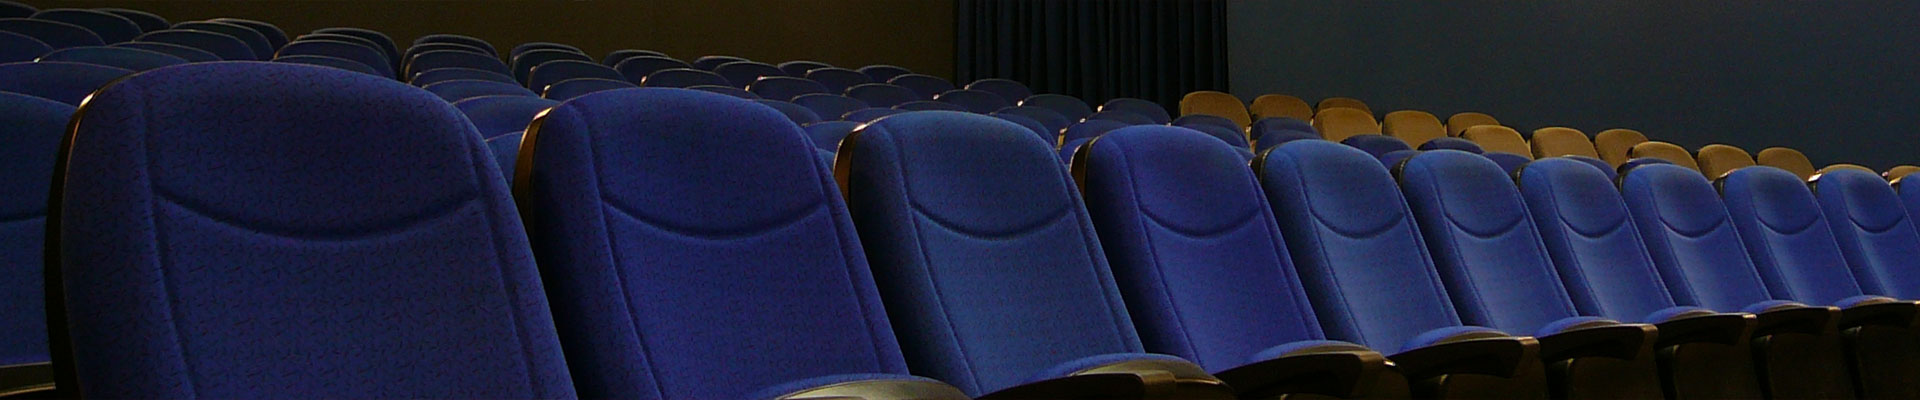 Il cinema